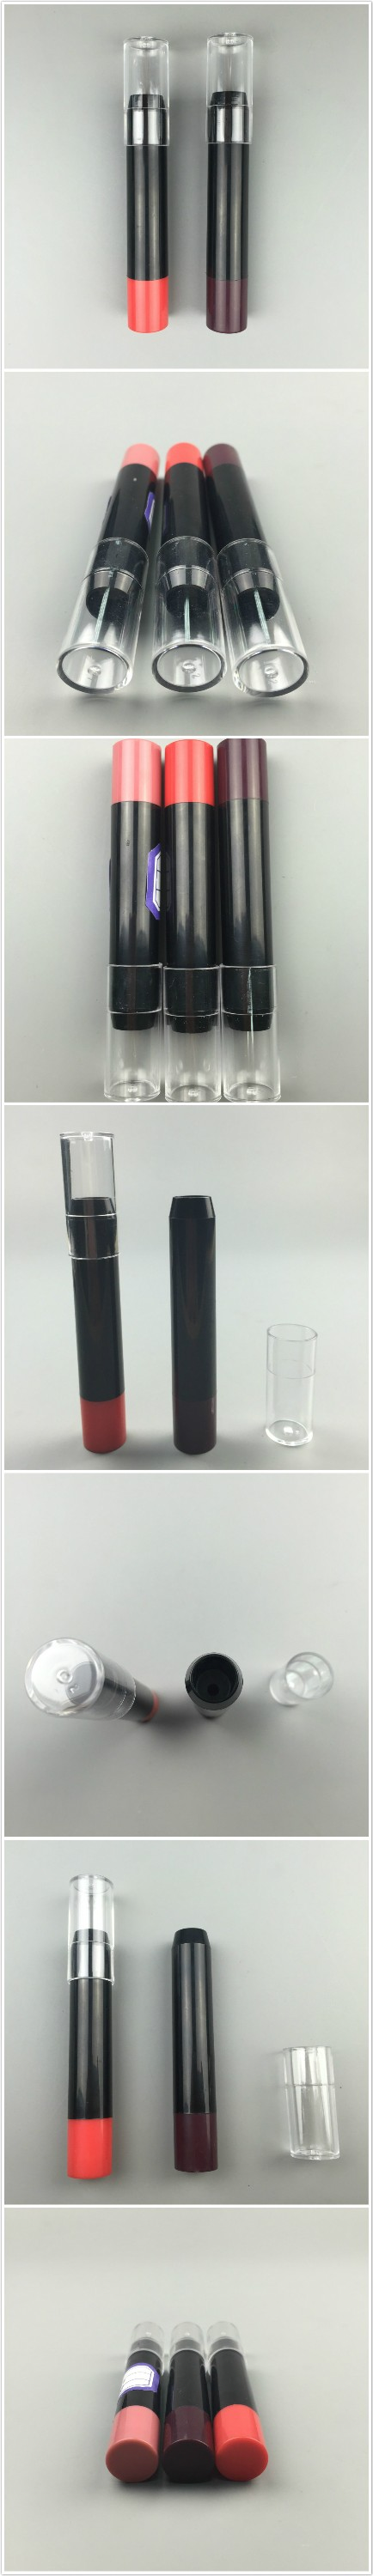 Hot selling custom UV slim black lipstick tube / case / container / packaging / box / packing